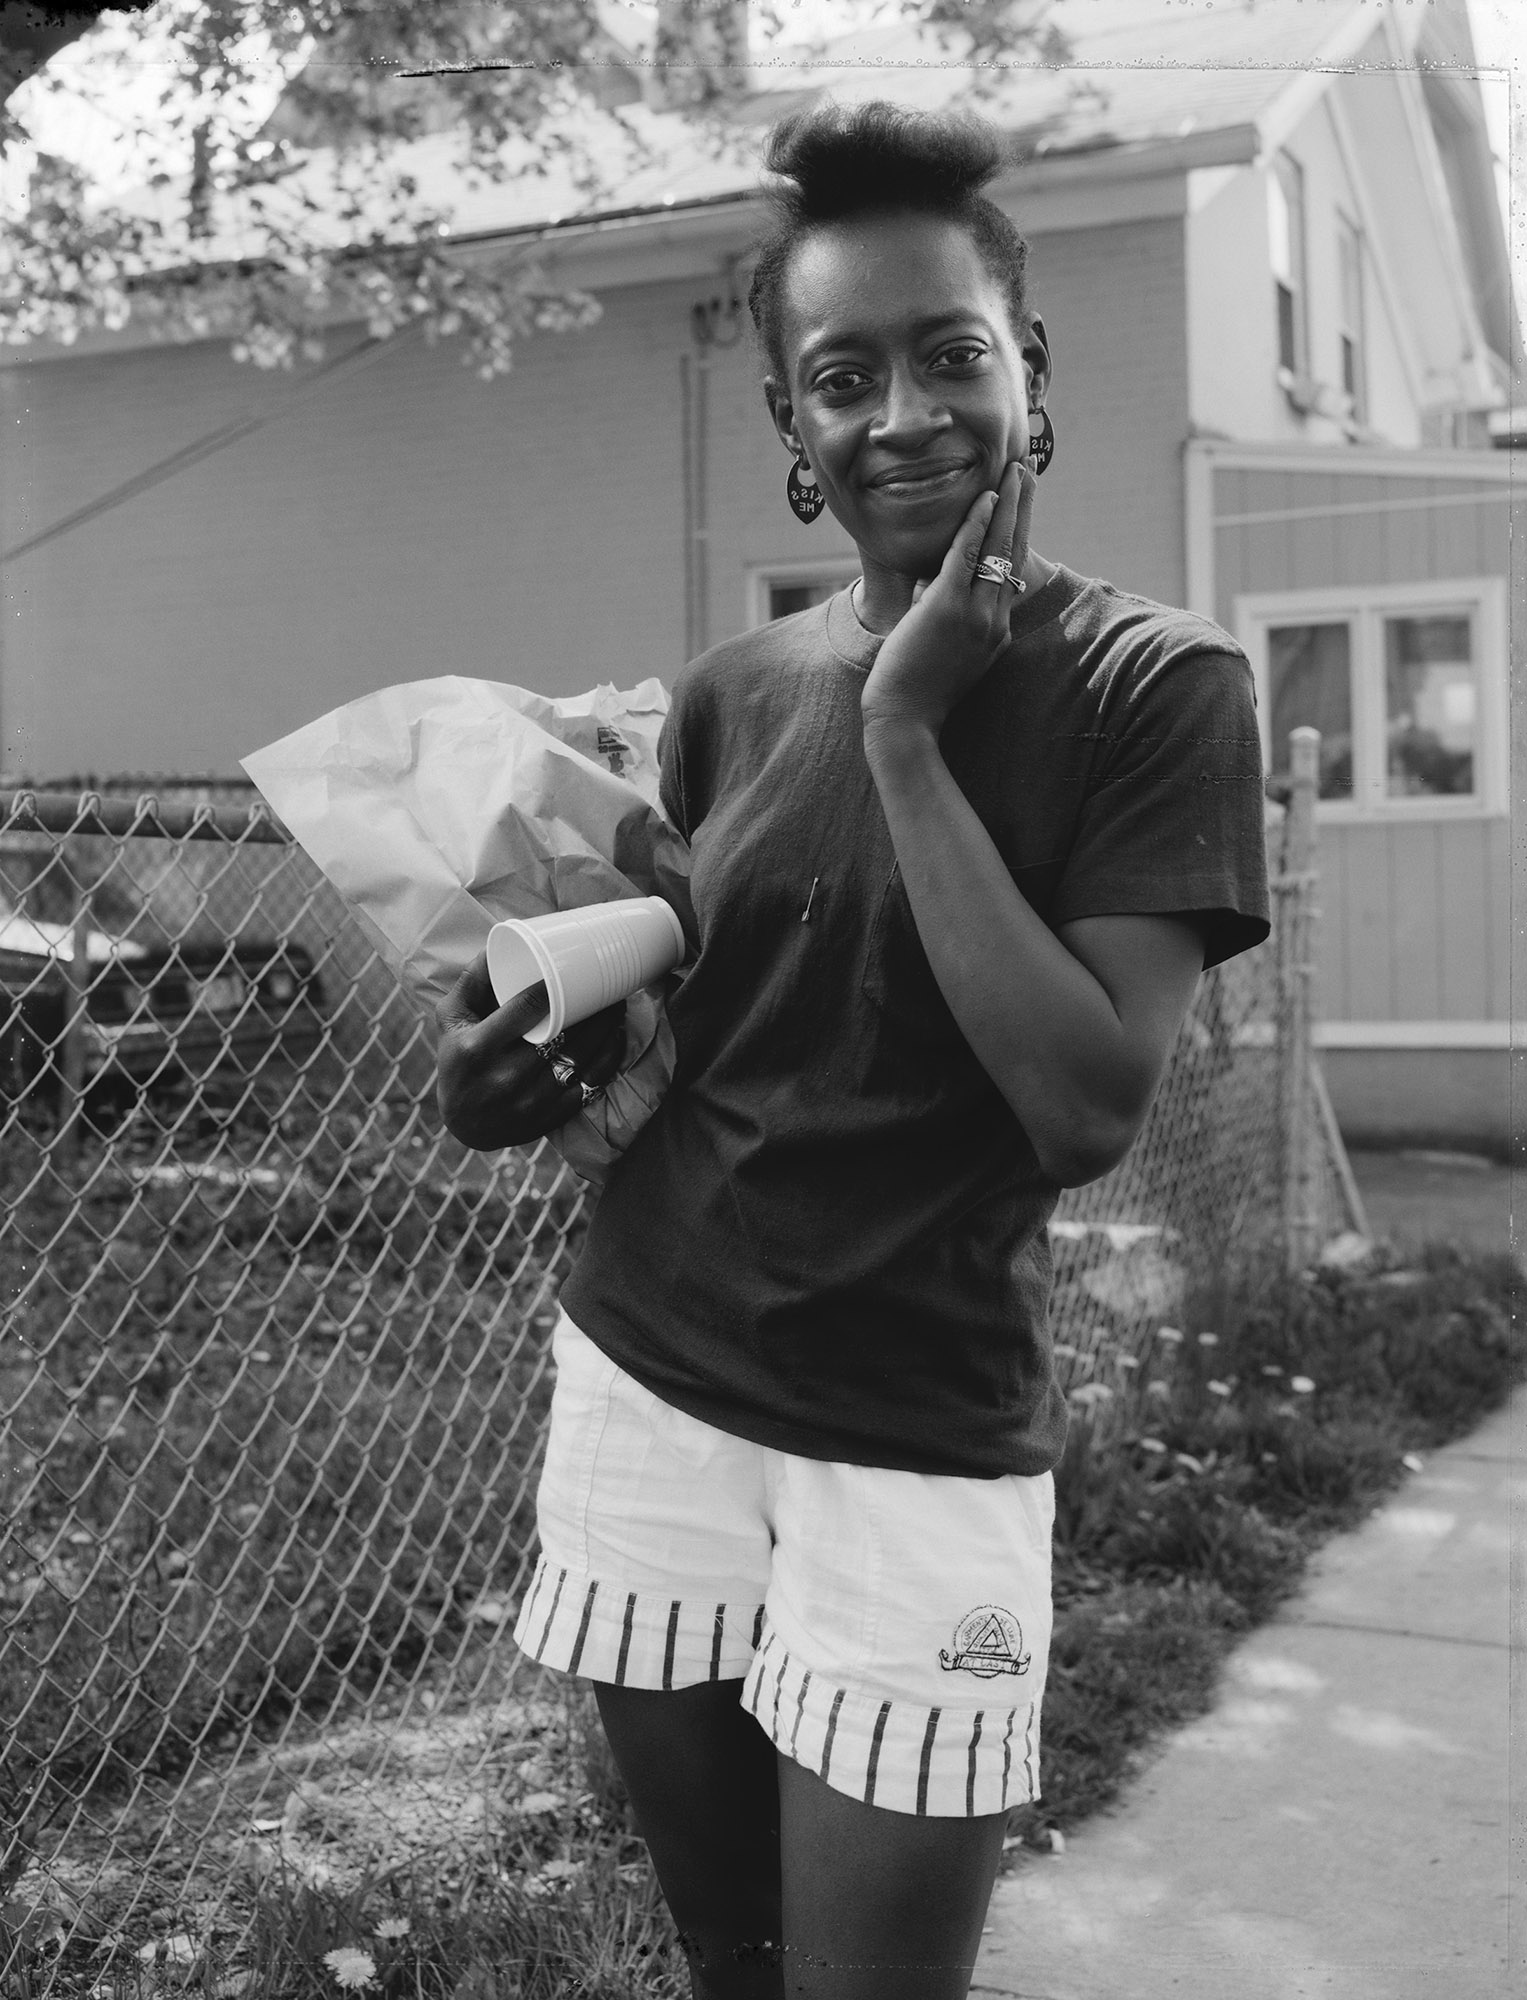 Dawoud Bey's 'Street Portraits' are a radical recentering of the Black community